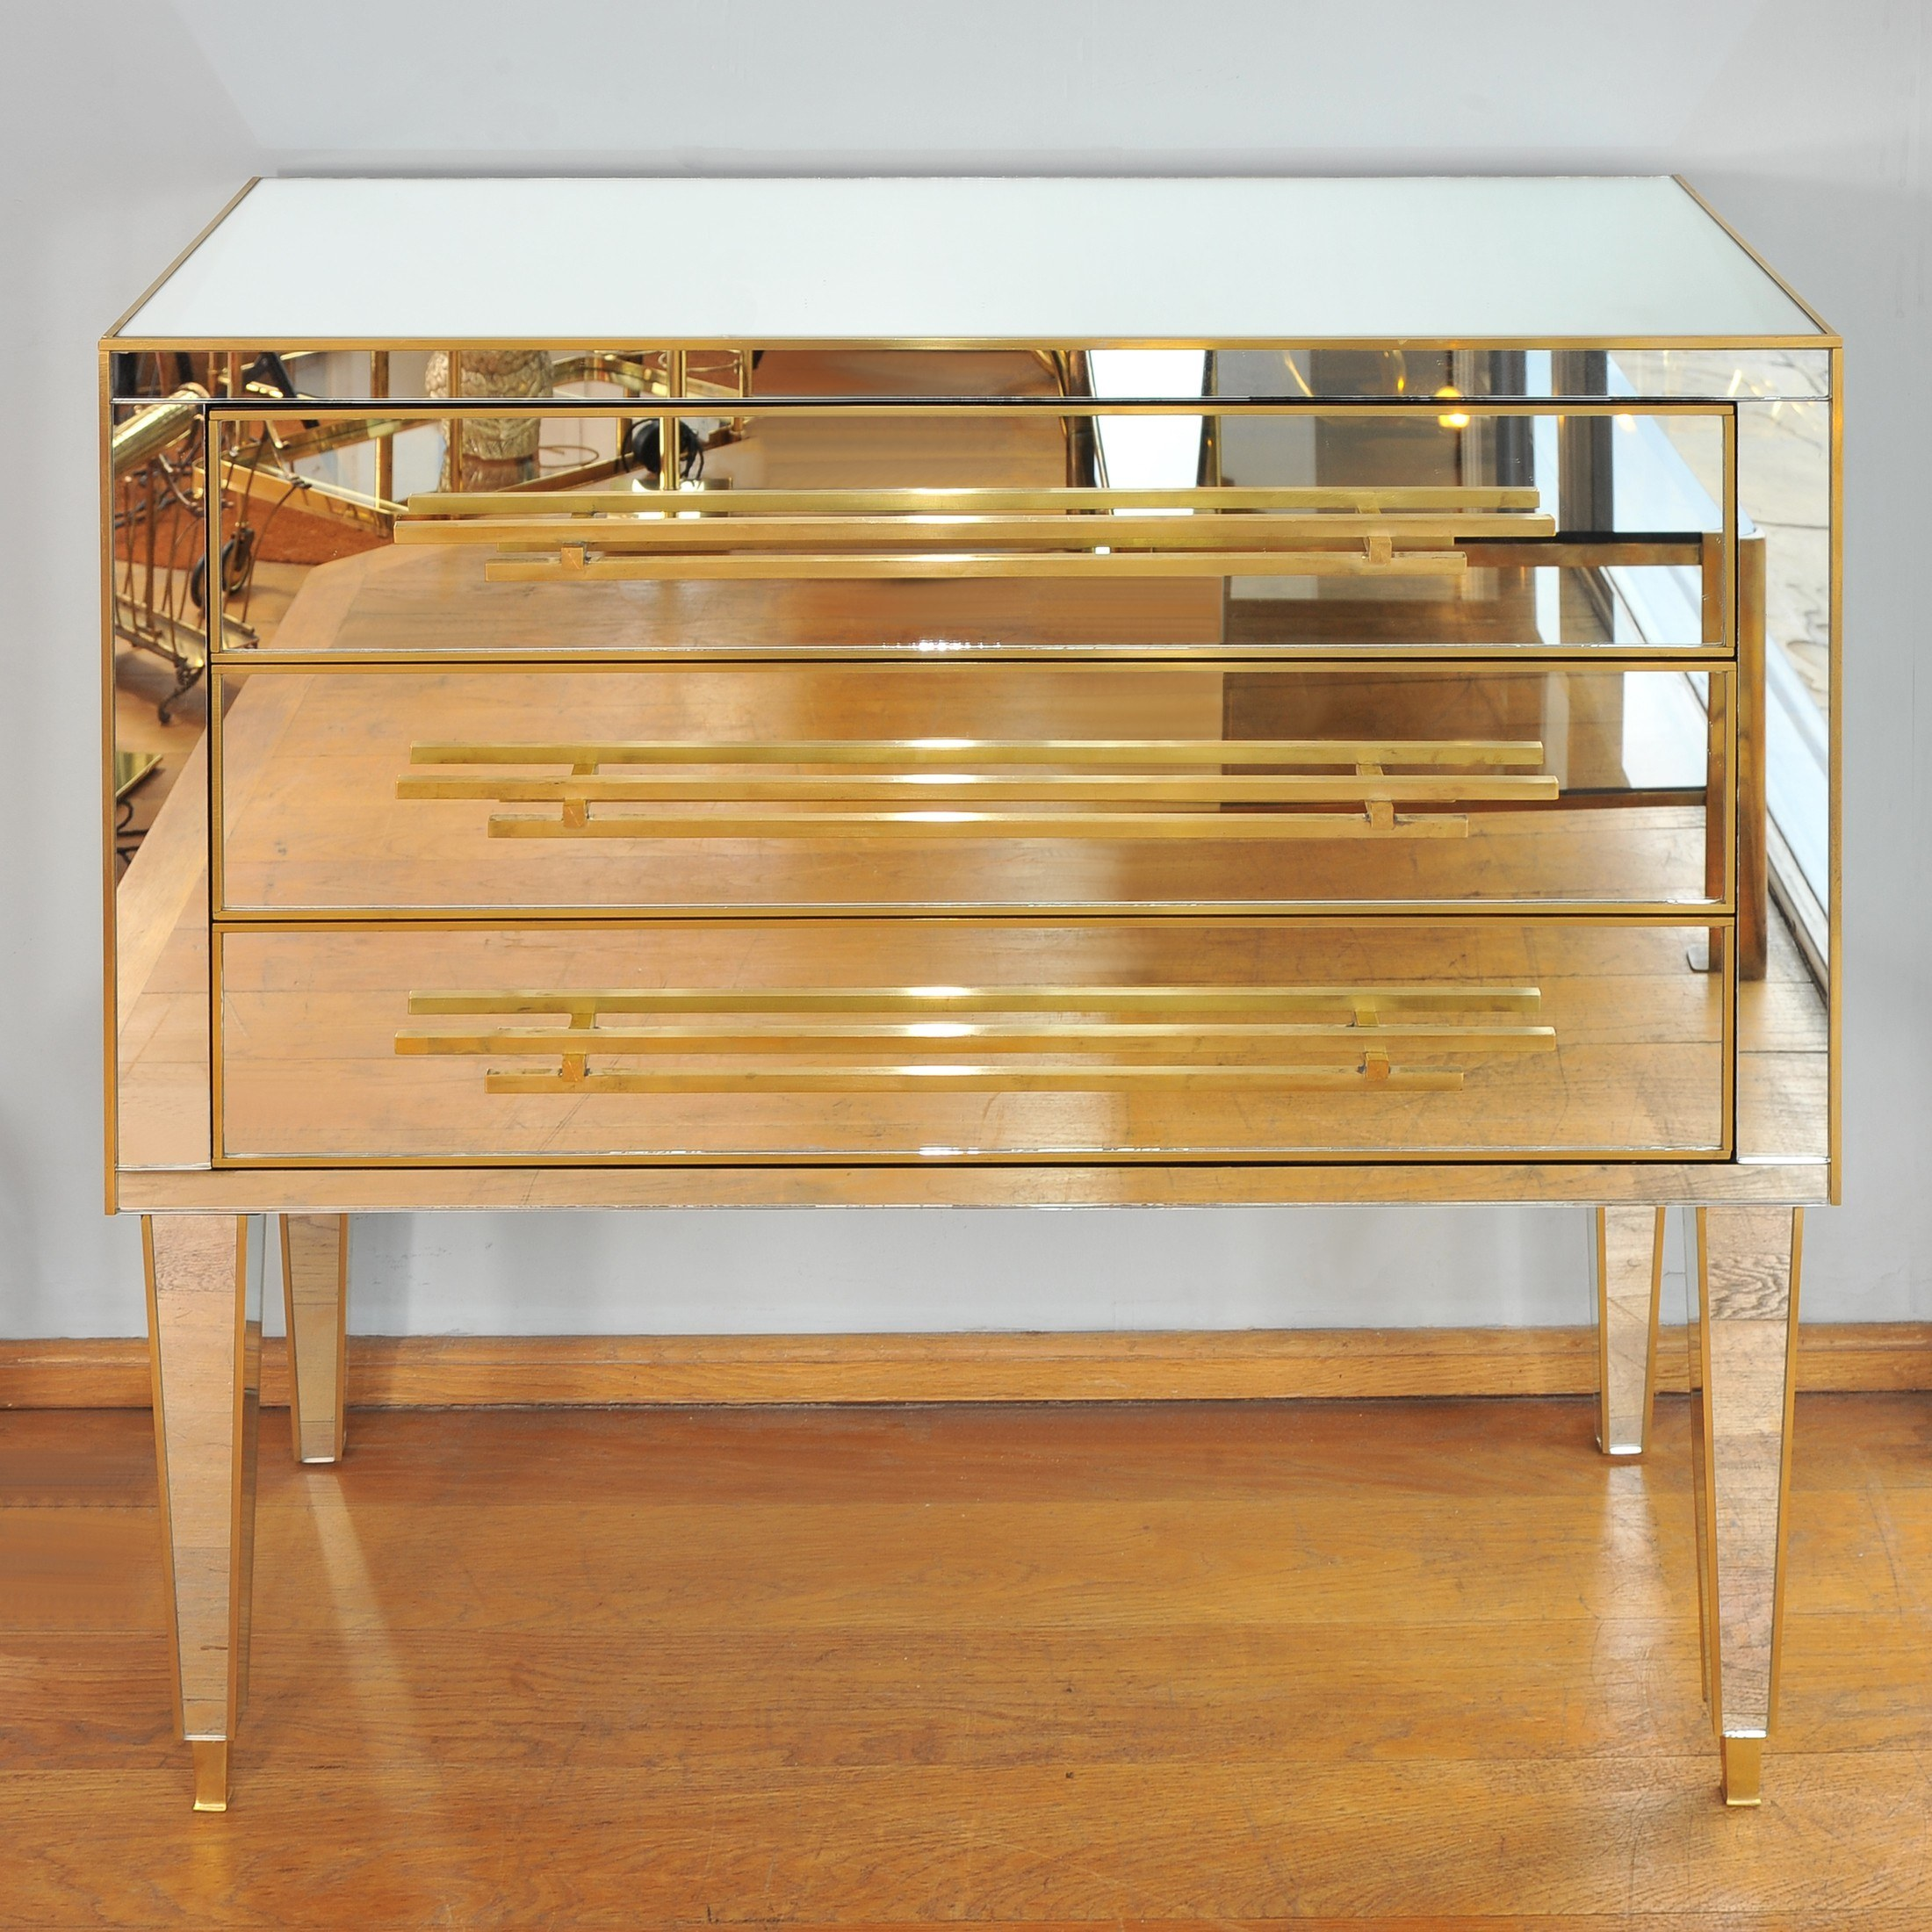 The image for Valerie Wade Fc661 1970S Italian Mirrored Chest Drawers 01